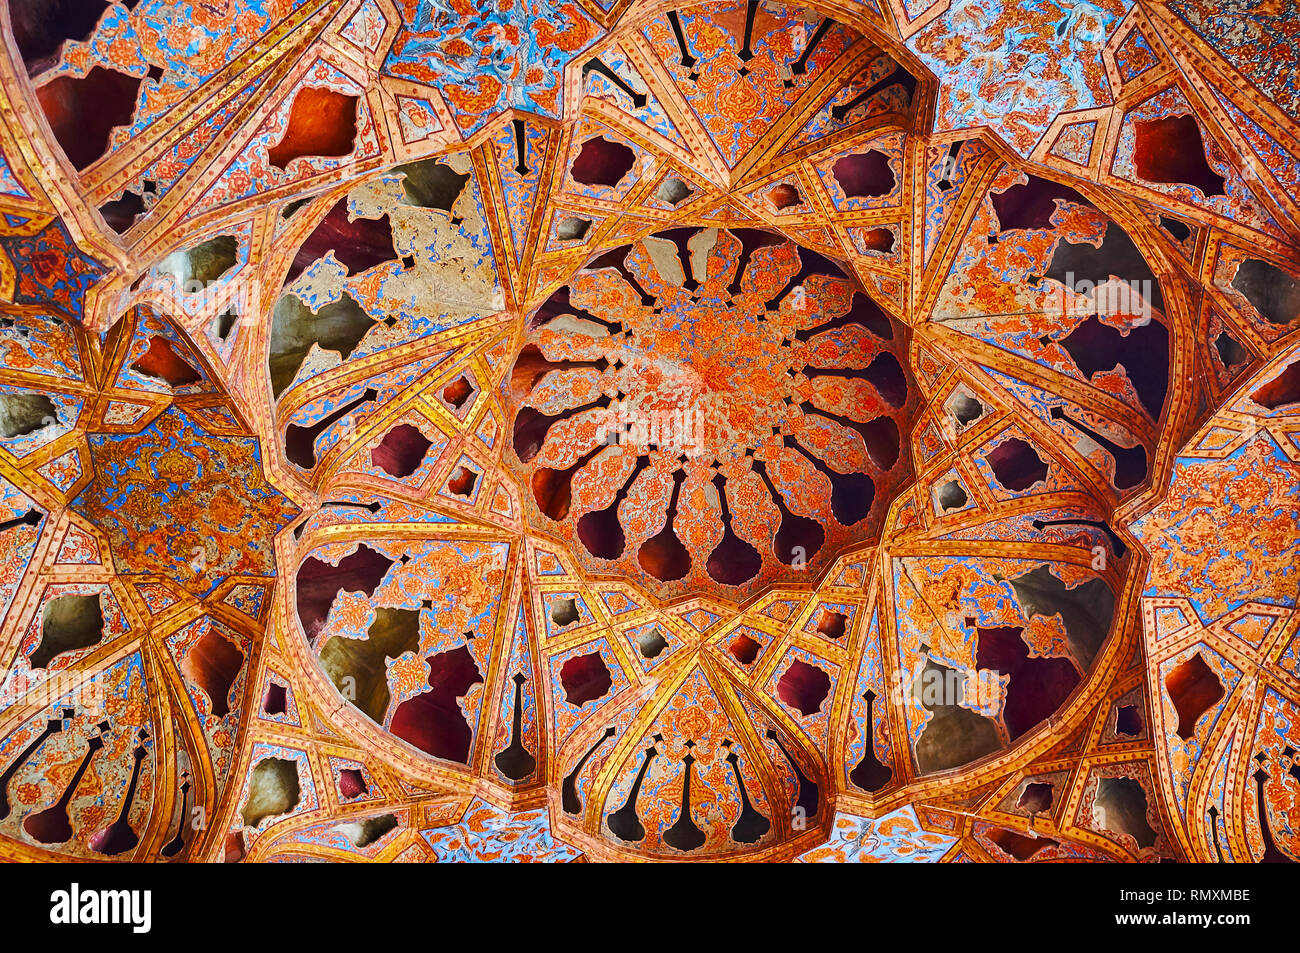 ISFAHAN, IRAN - OCTOBER 21, 2017: The complex dome of Music Hall of Ali Qapu palace decorated with muqarnas, Tong Borie plasterwork technique and fine Stock Photo